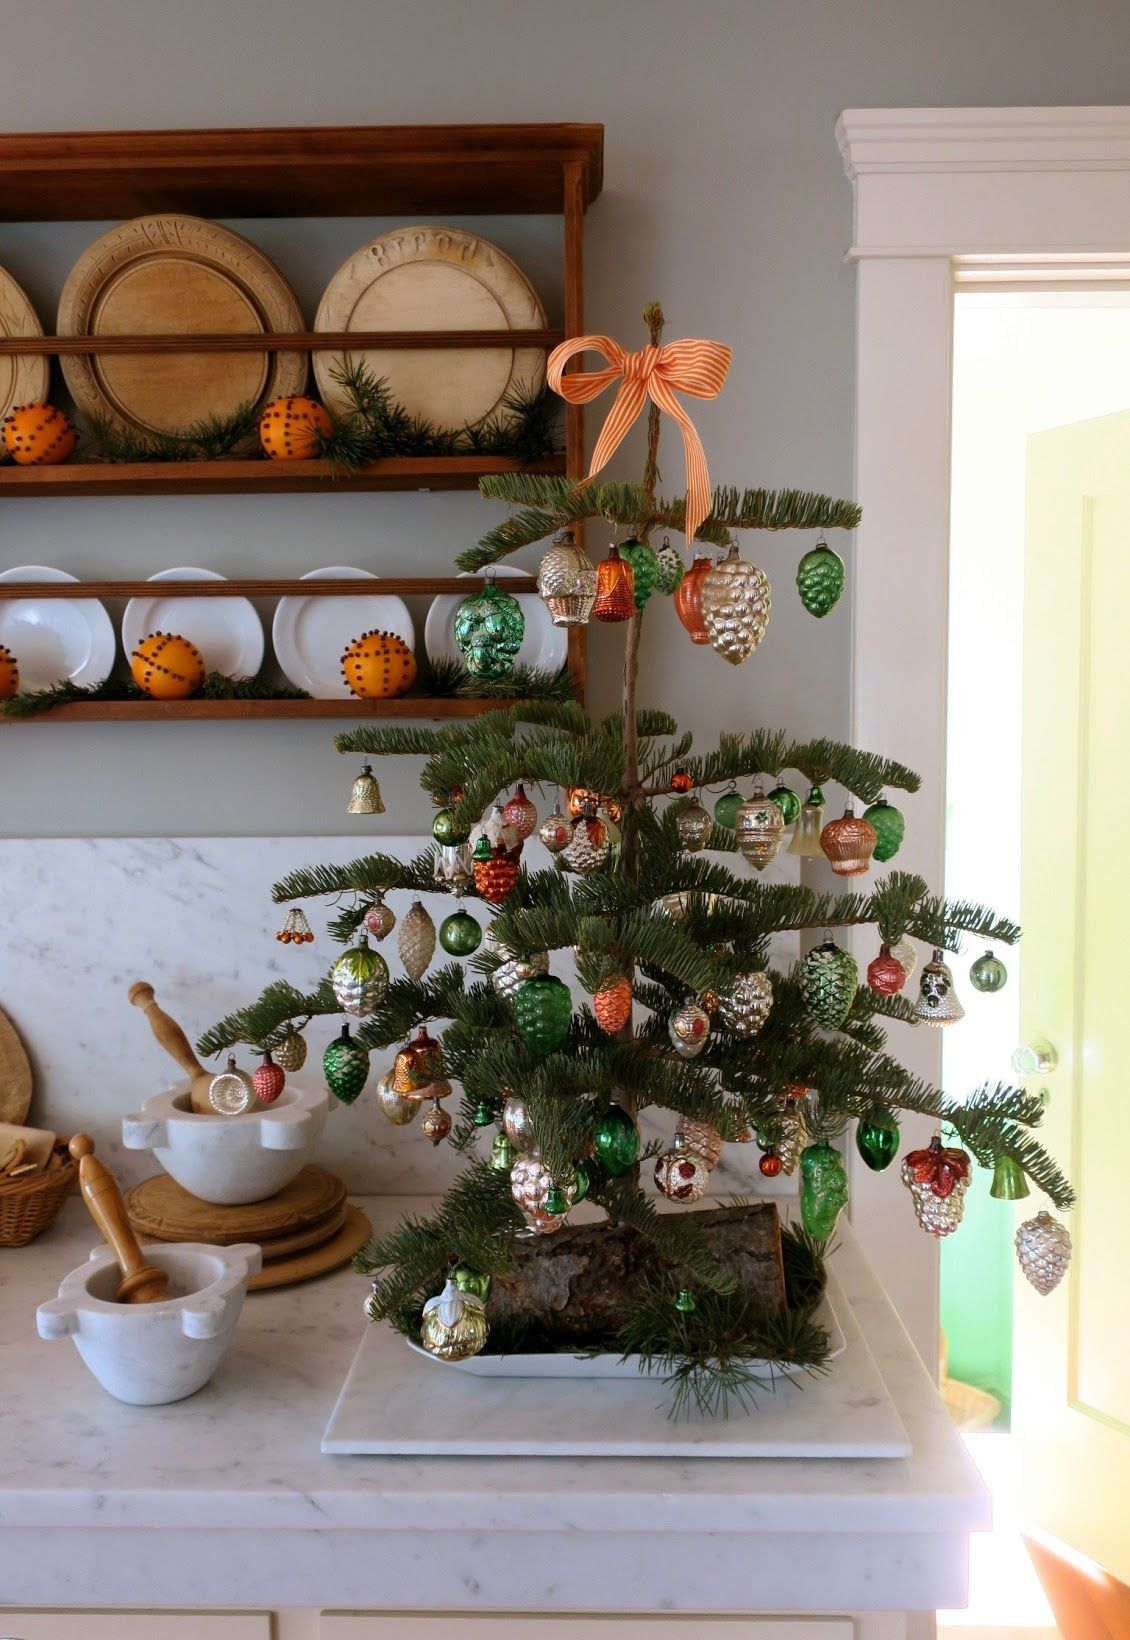 Chronica Domus: A Kitchen Tree For Christmas | Holiday Decor ...